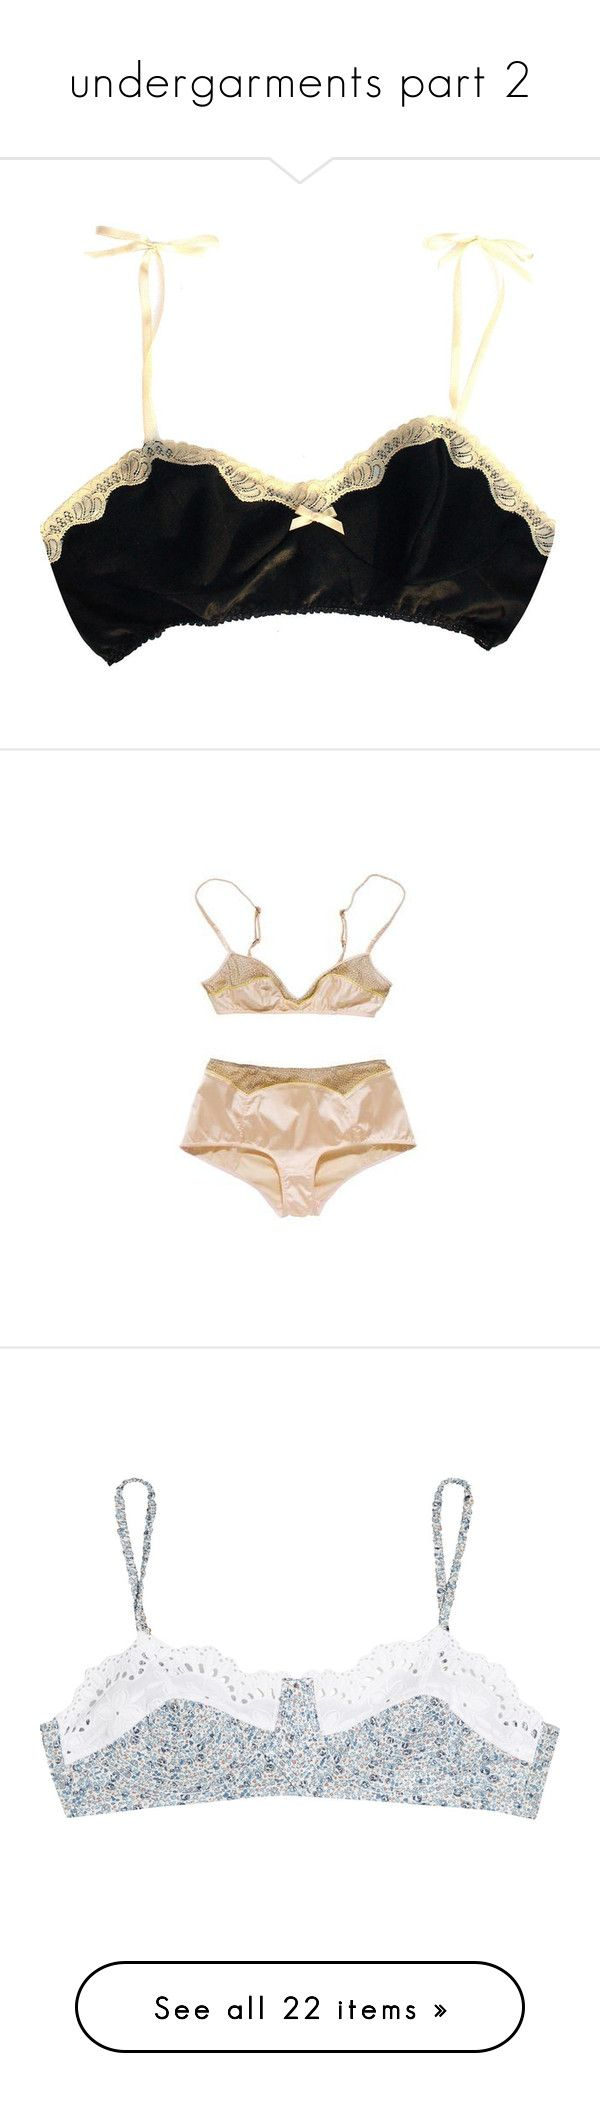 """undergarments part 2"" by thug-lyfe ❤ liked on Polyvore featuring intimates, bras, lingerie, underwear, women, underwire bra, bralette lingerie, bralette bras, soft cup bra and black and white lingerie"